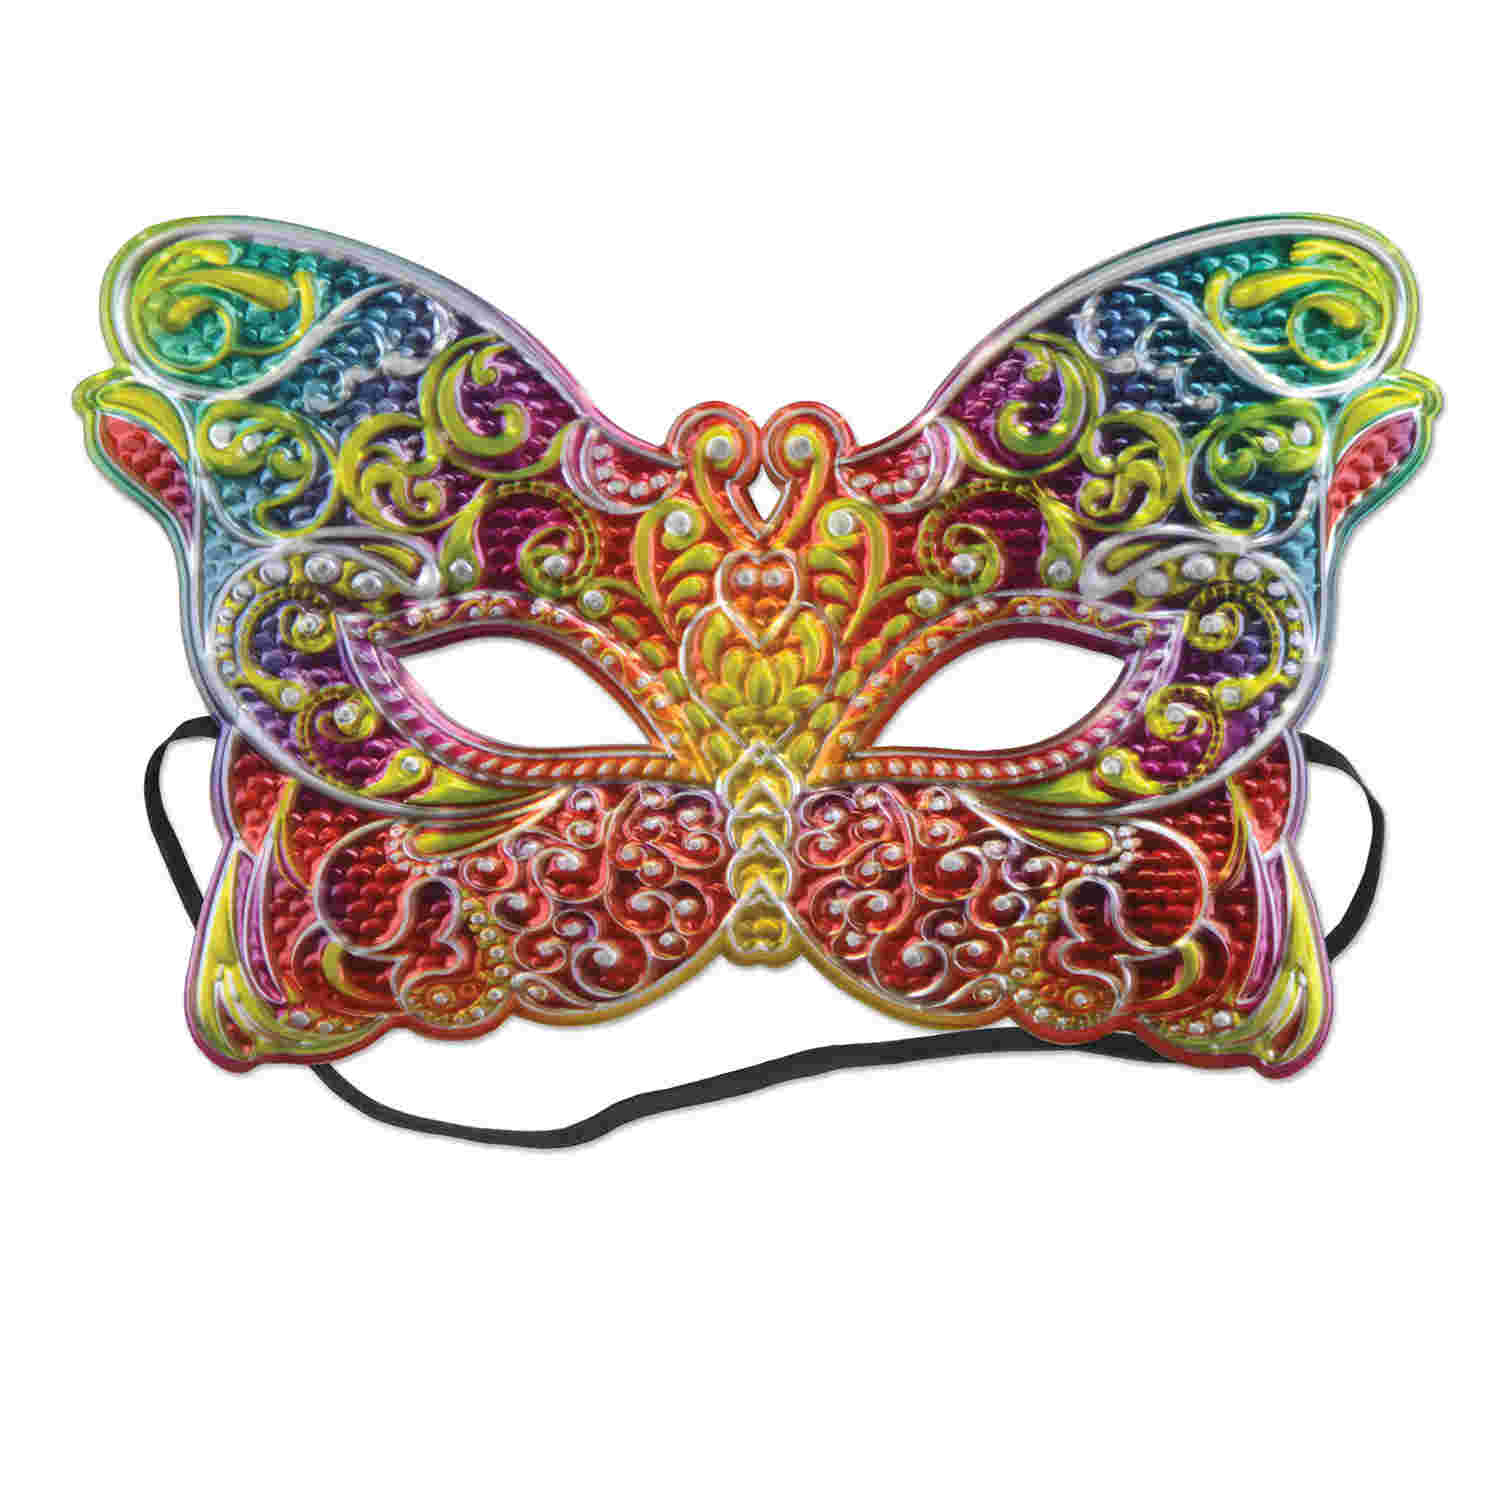 Butterfly shaped multi-colored mask with elastic attached.